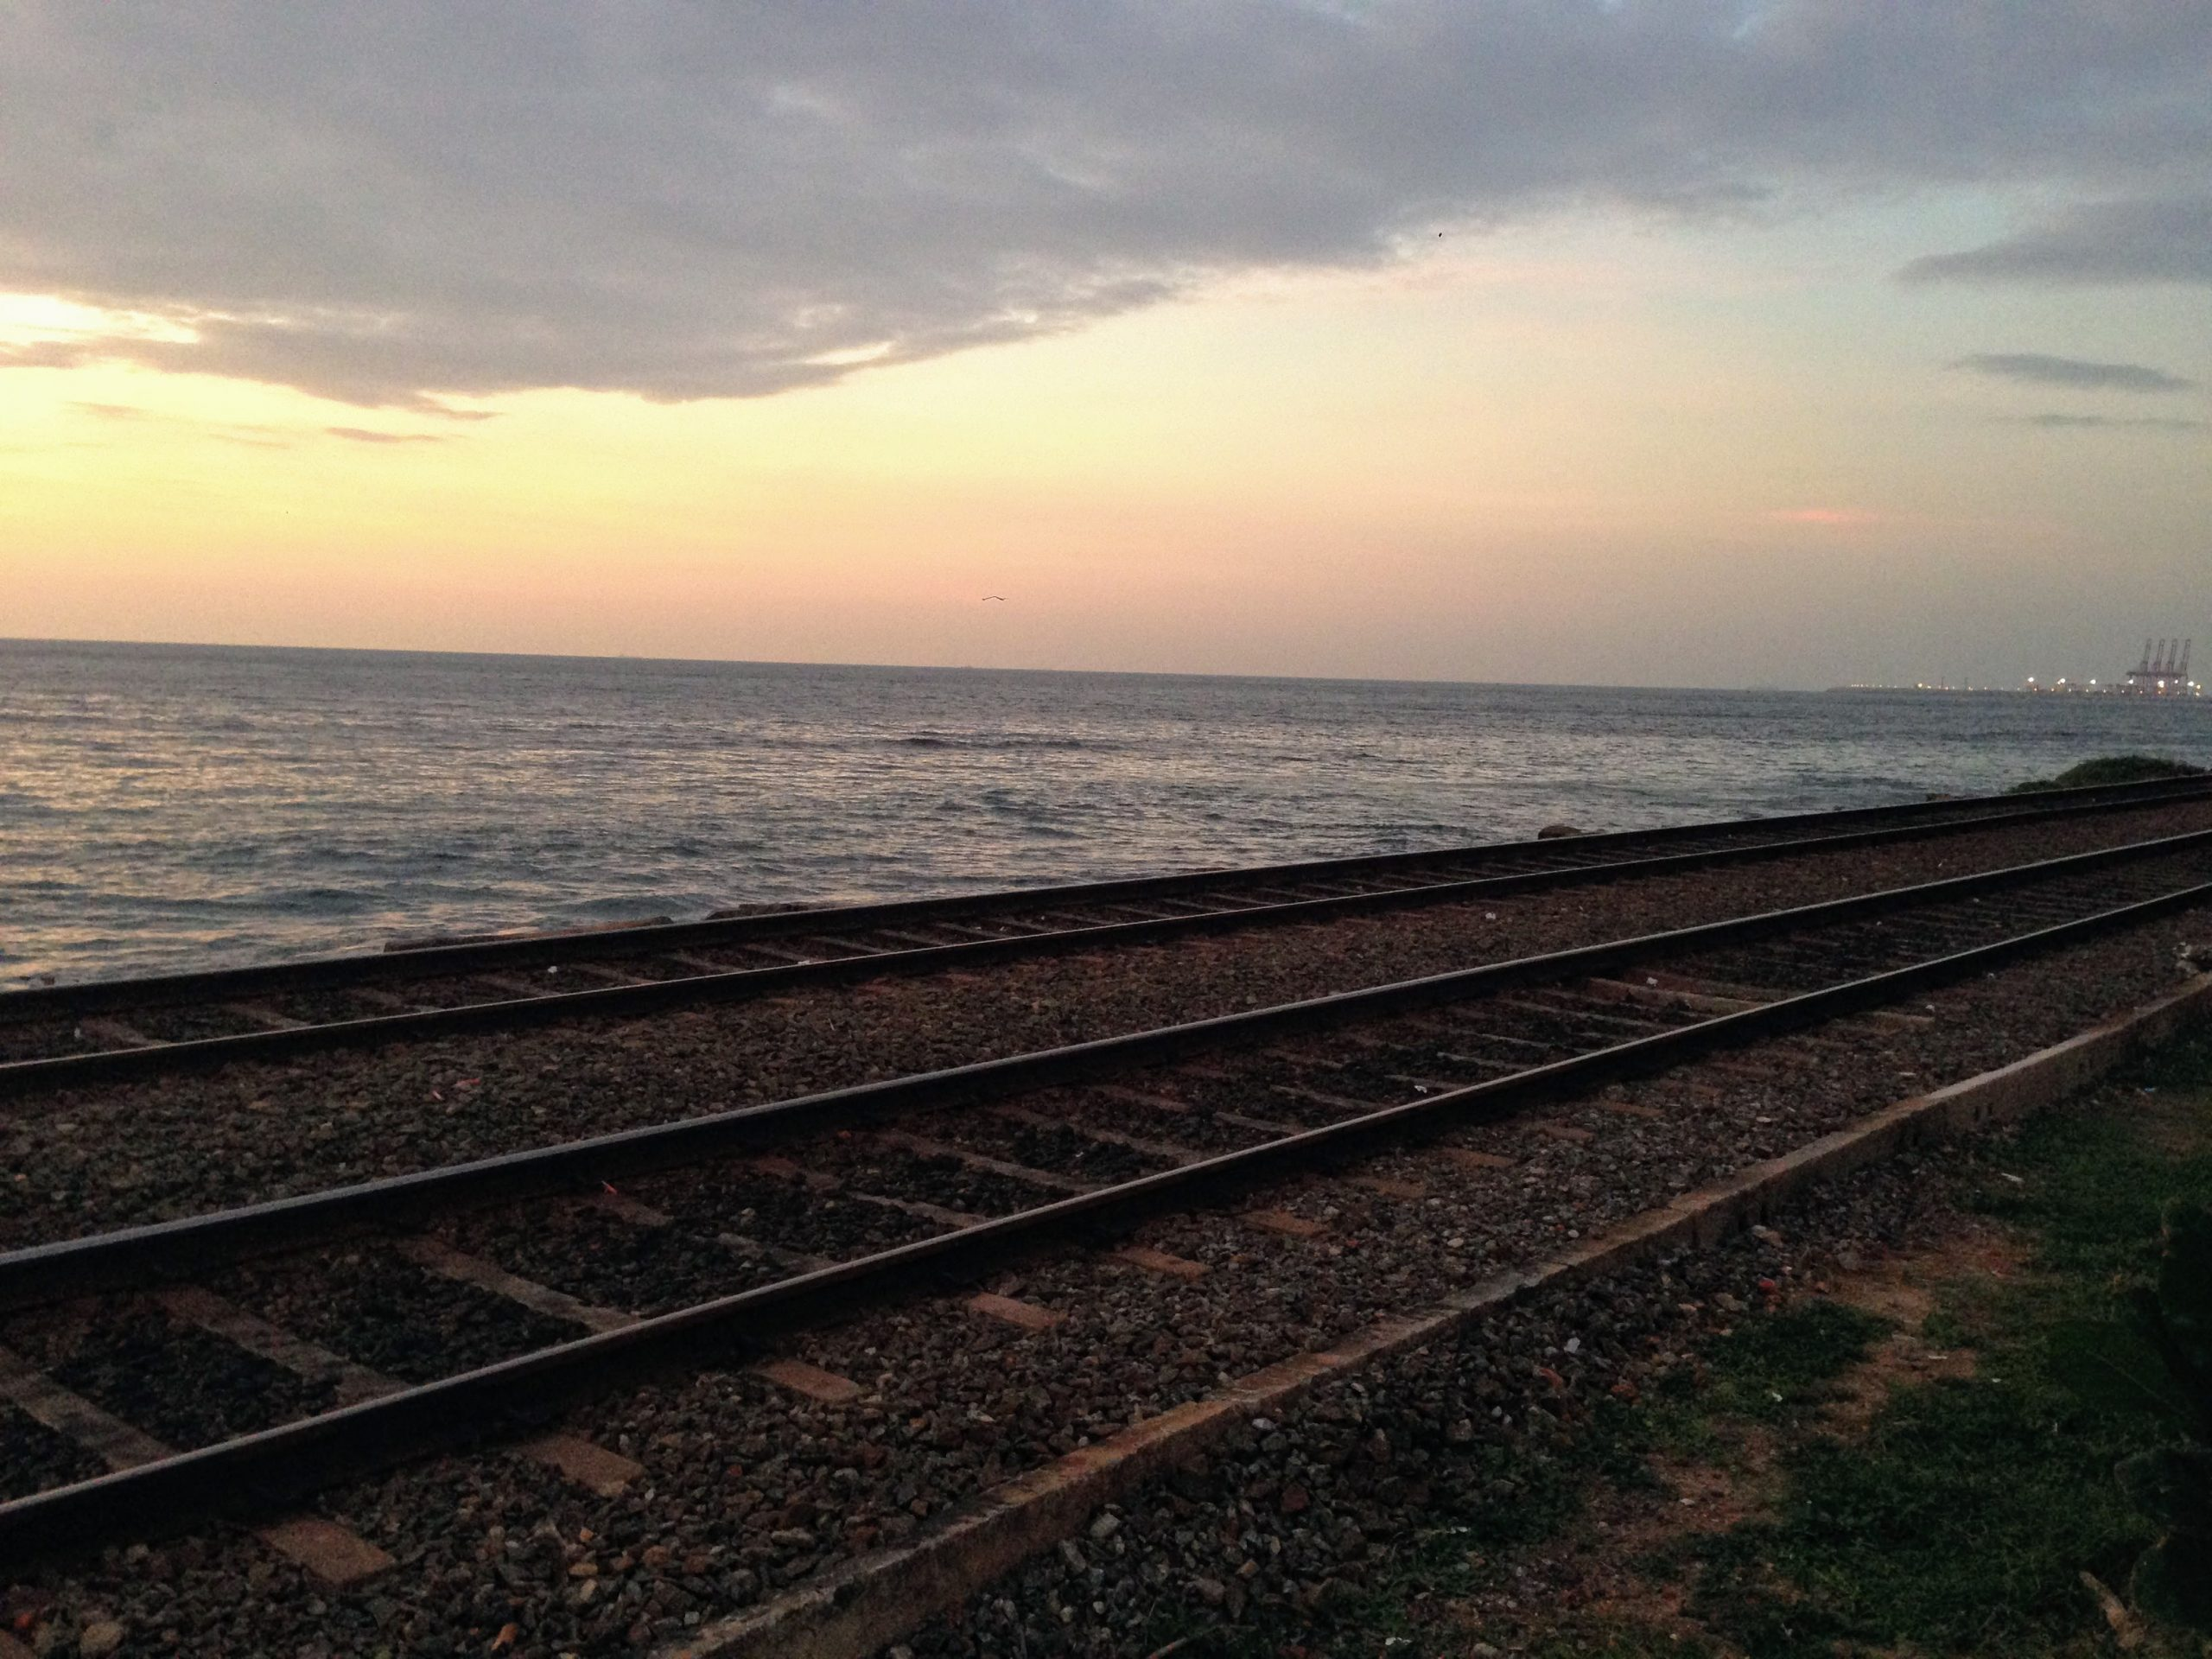 Sri Lanka railway tracks